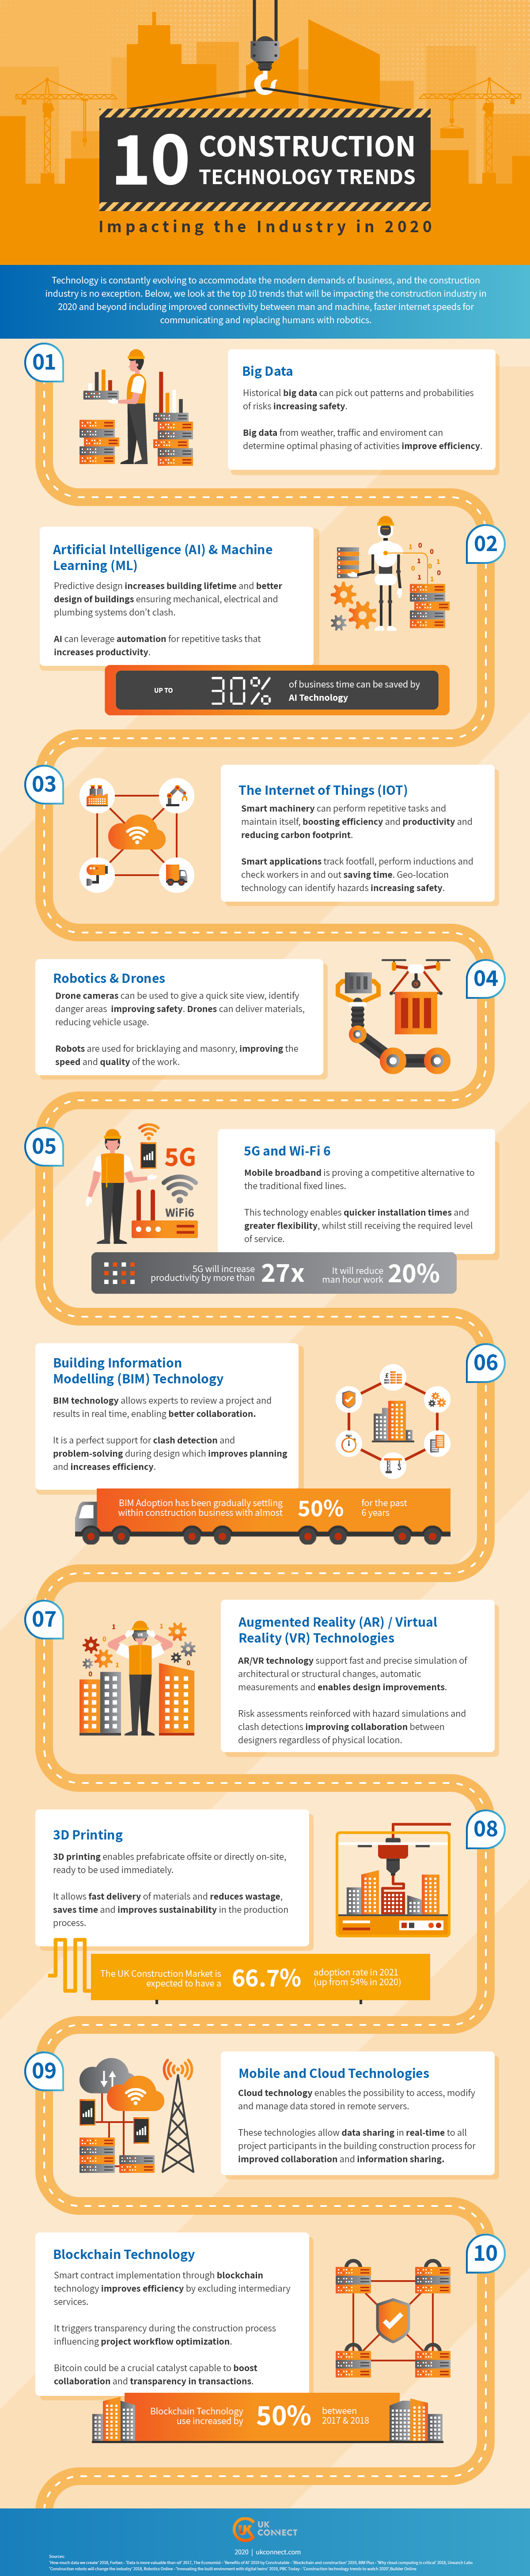 Infographic: 2020's top 10 construction technology trends